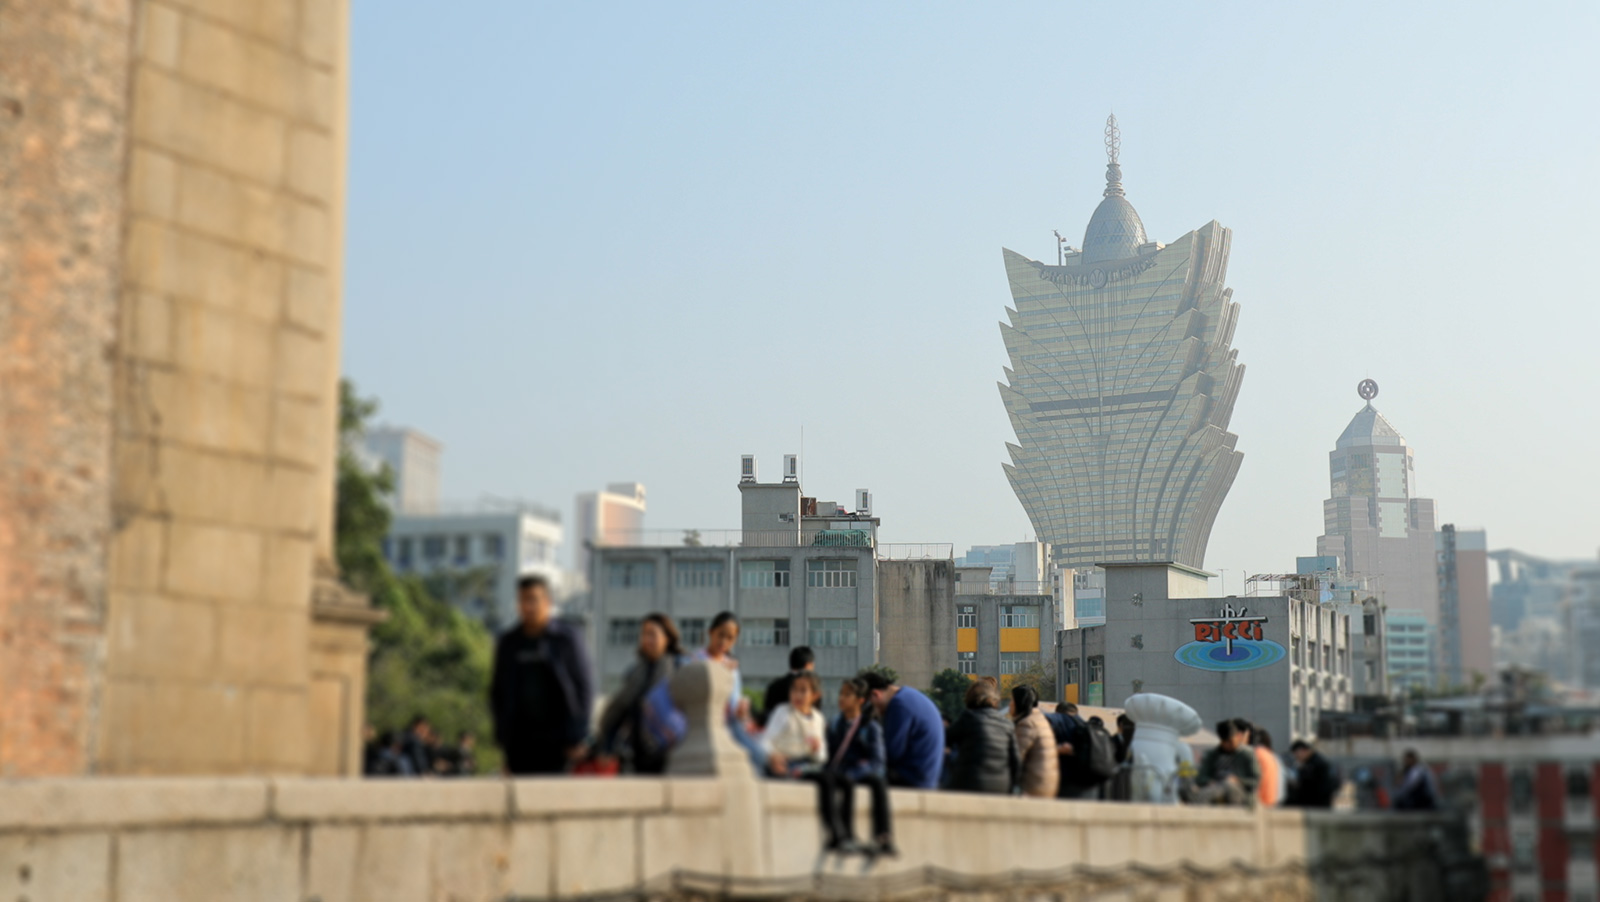 Macau still doesn't want to talk 2022 concessions